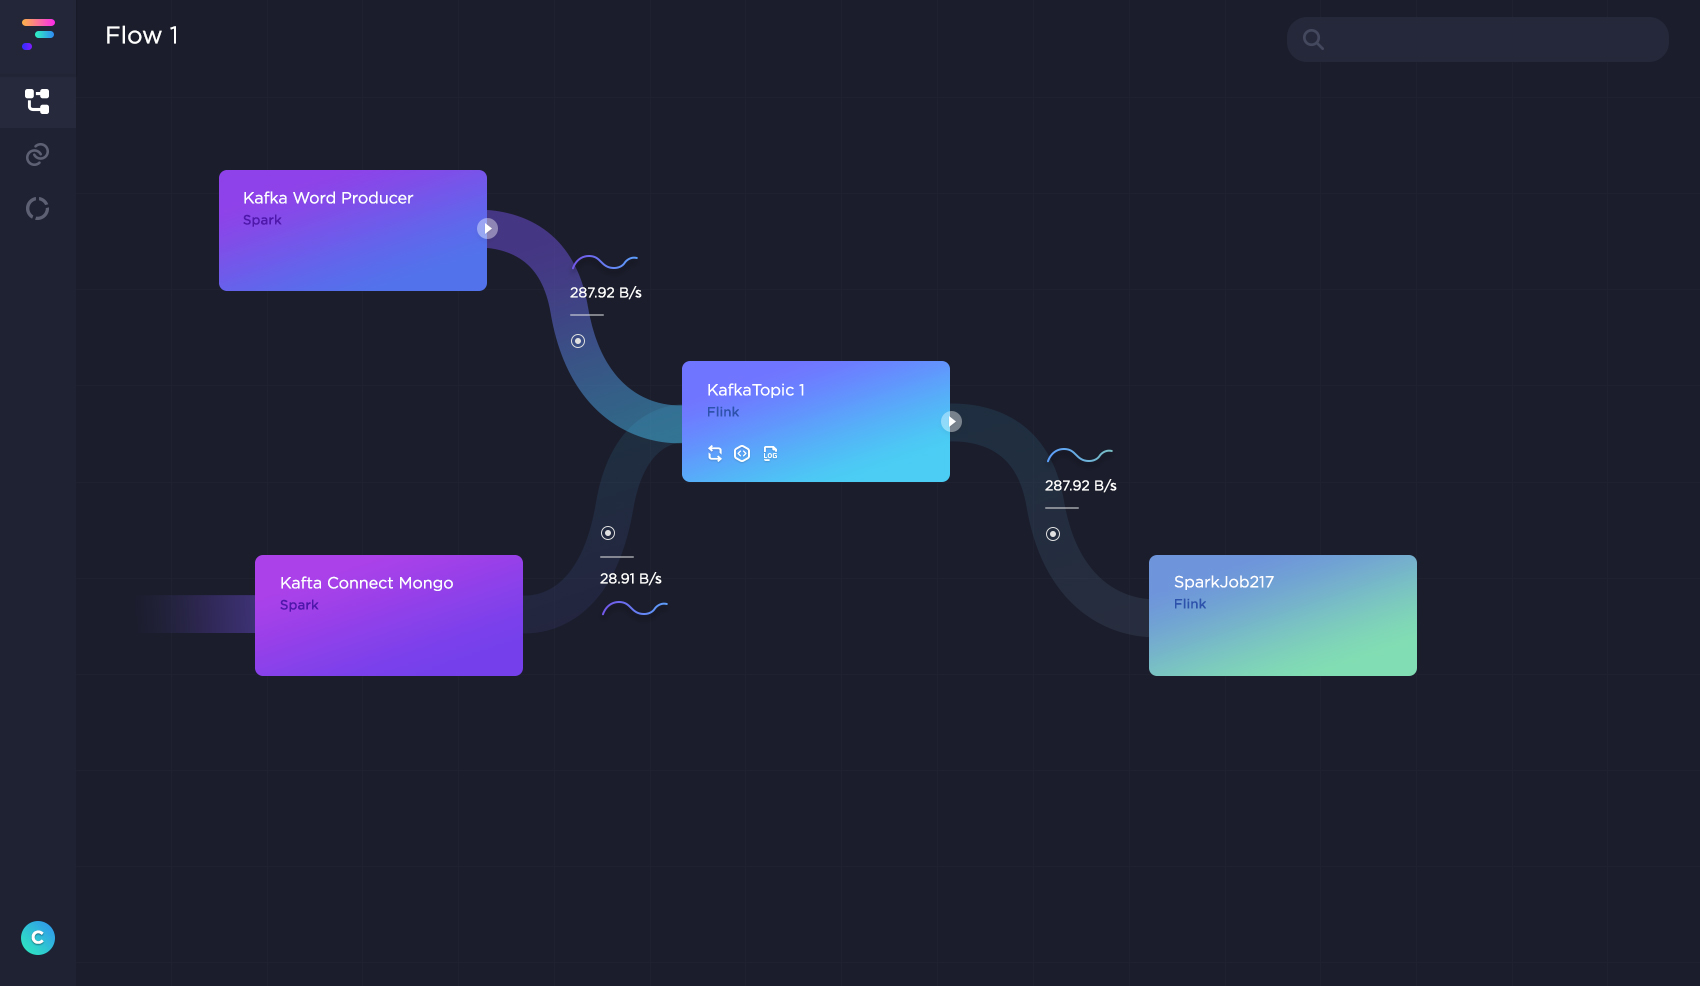 The  Flow Details  page shows all the steps in that flow, their interconnections, and real-time information about the data flowing through the interconnections.